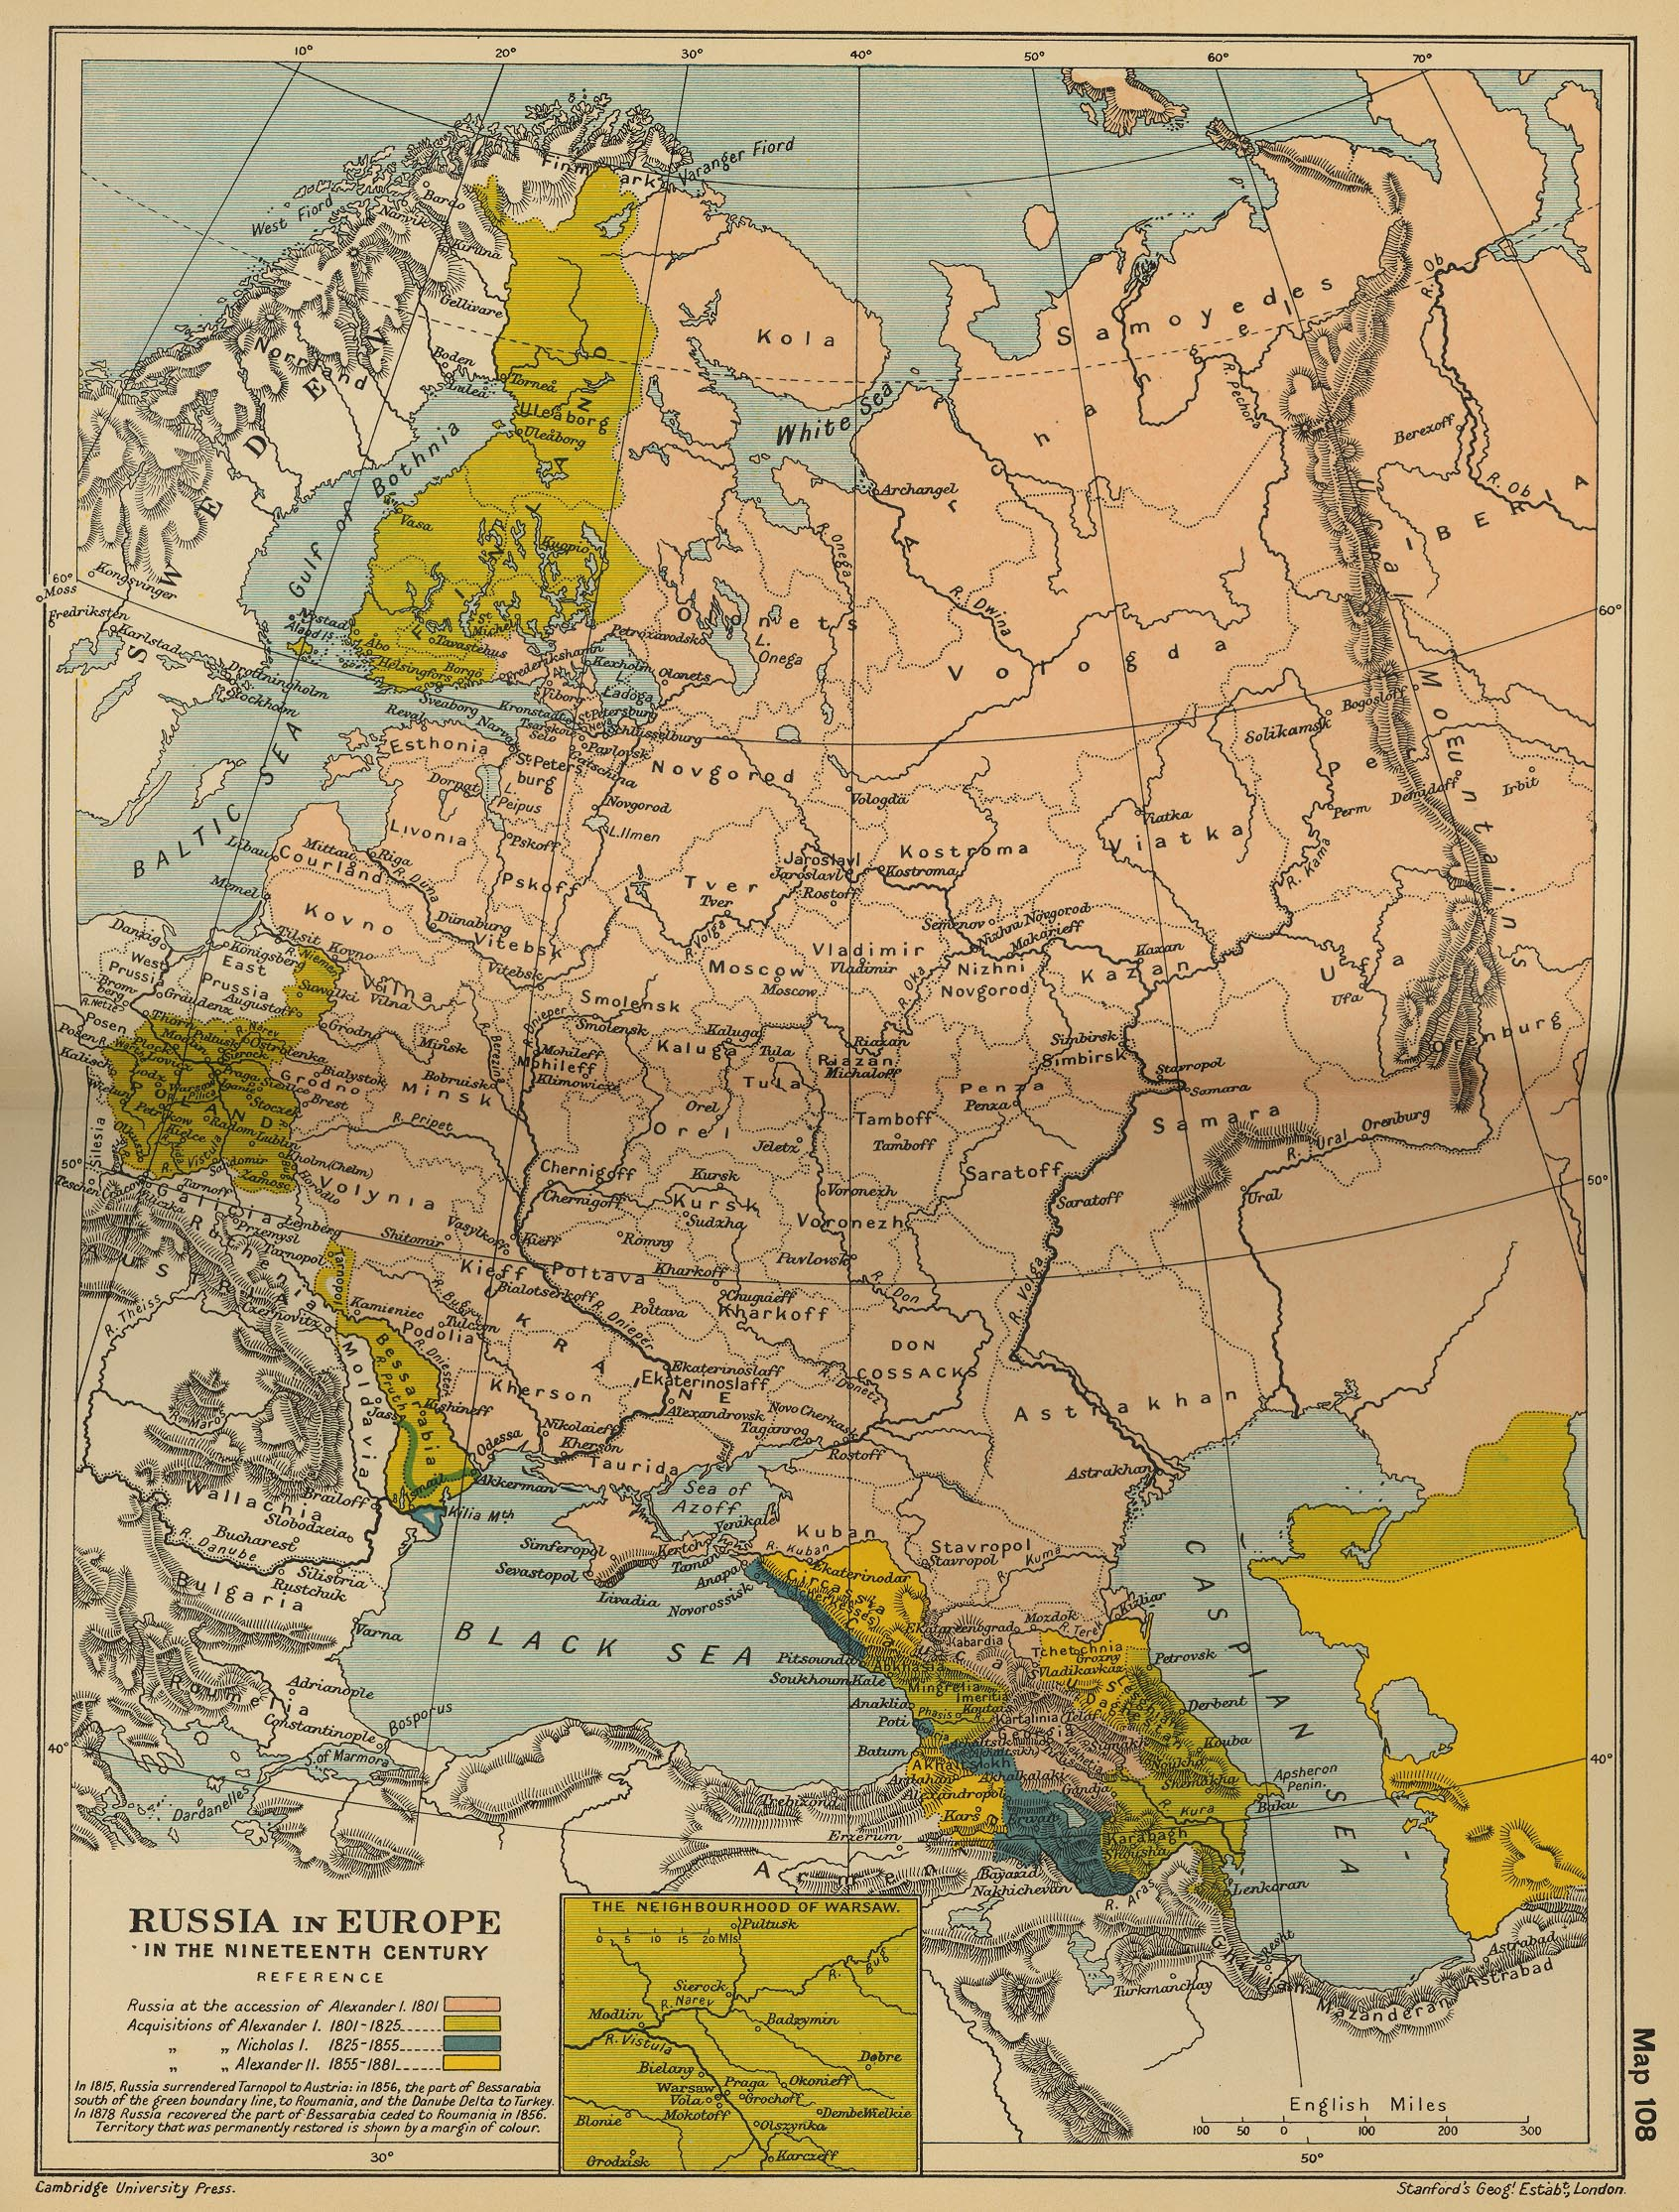 Unit Vii Part I 19th Century Europe Maps  Lessons  Tes Teach